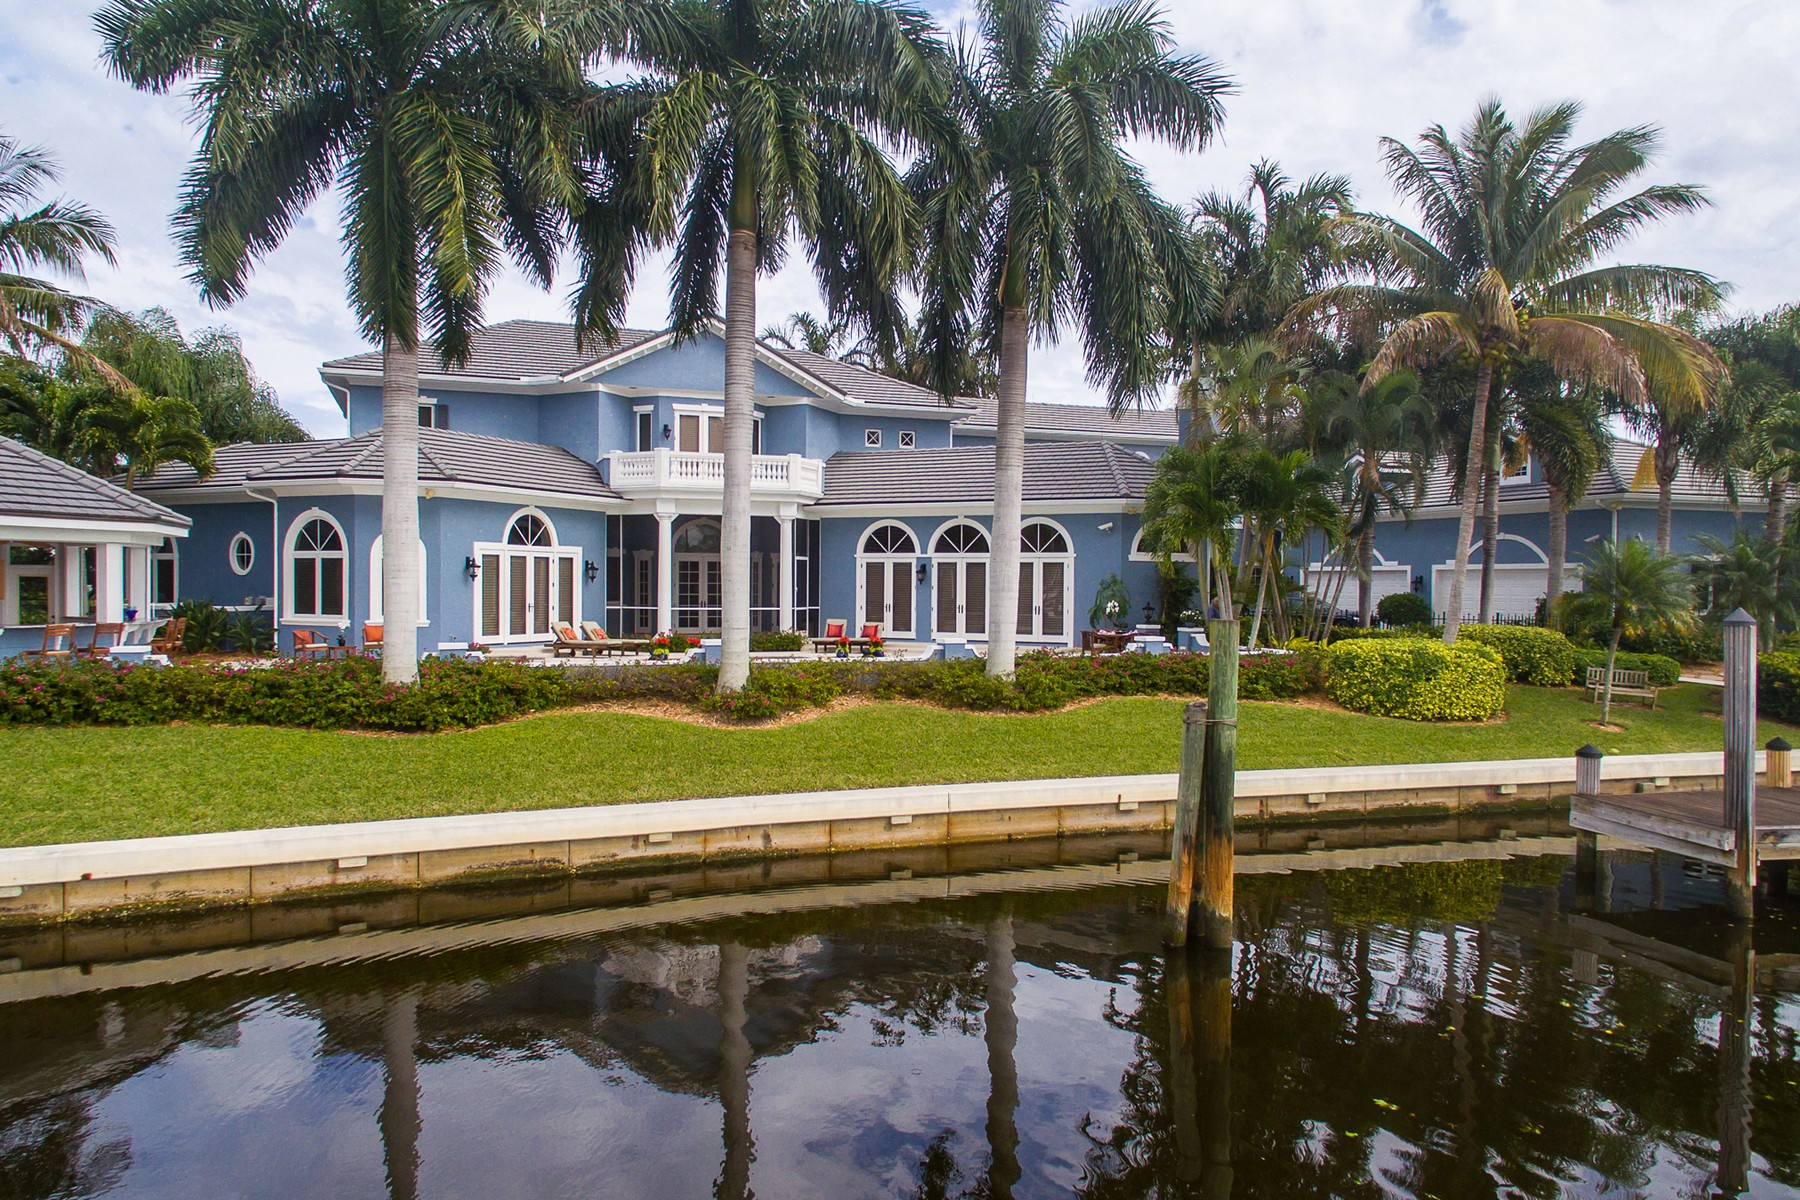 Villa per Vendita alle ore Yachtsman Dream Home in the Moorings 101 Springline Drive Vero Beach, Florida, 32963 Stati Uniti